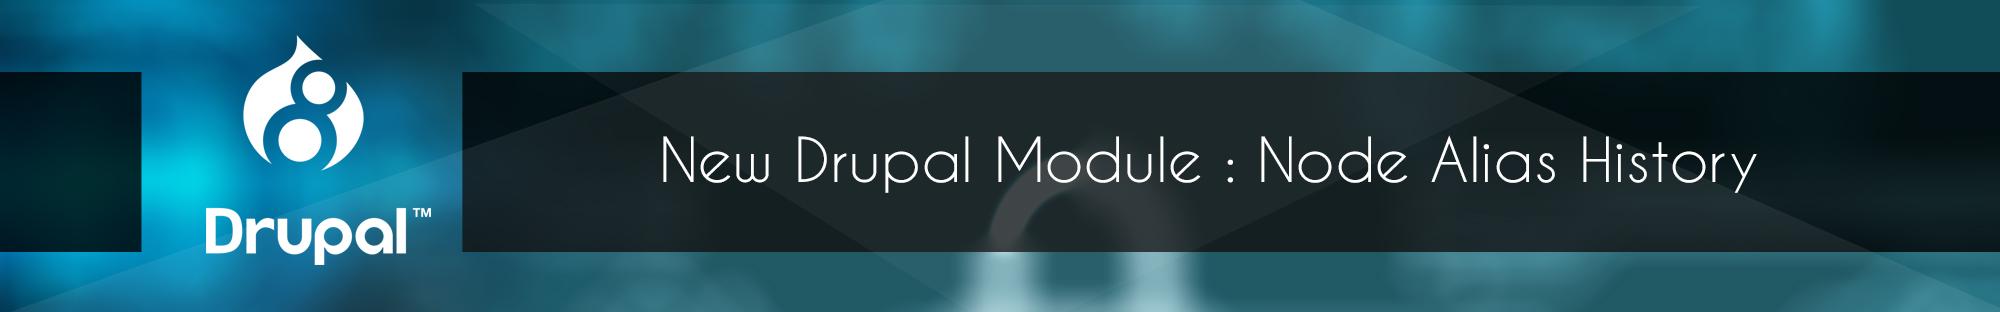 New Drupal Module Node Alias History_Blog